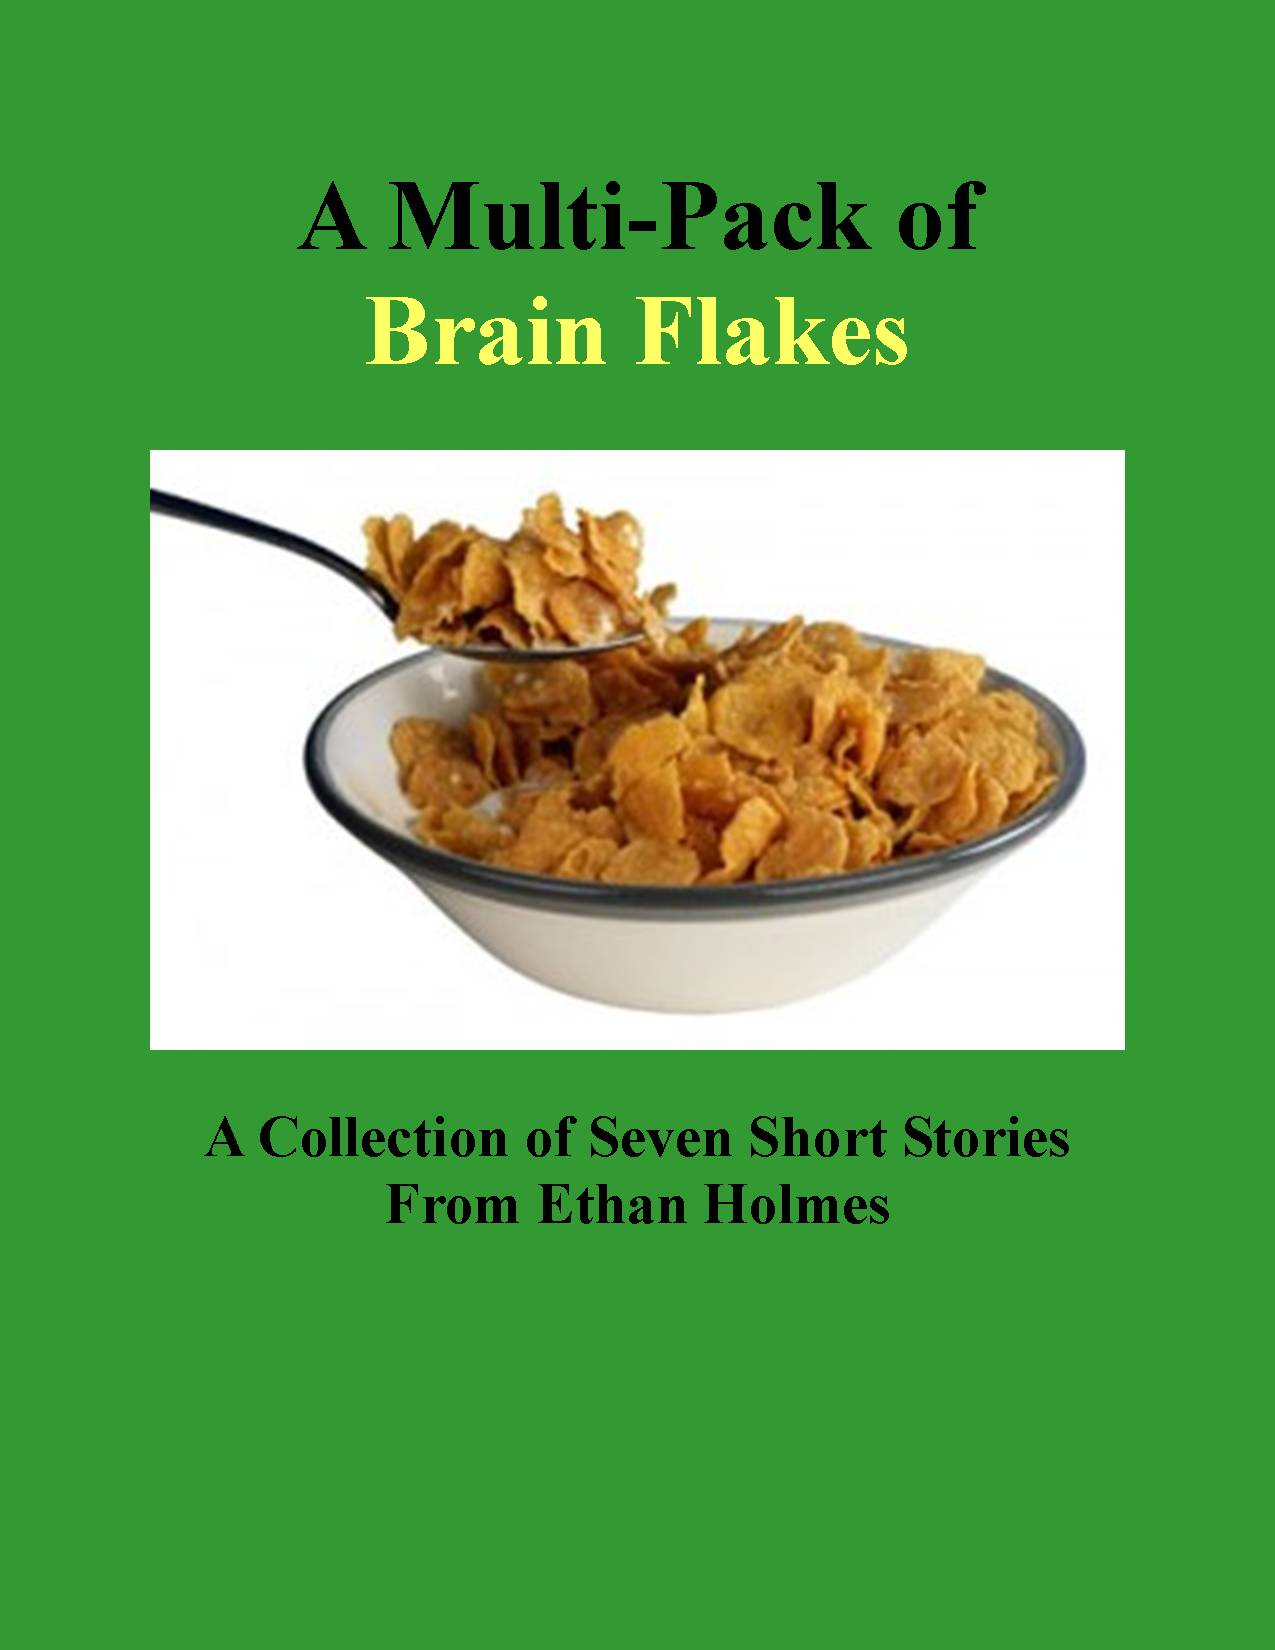 A Multi-Pack of Brain Flakes by Ethan Holmes